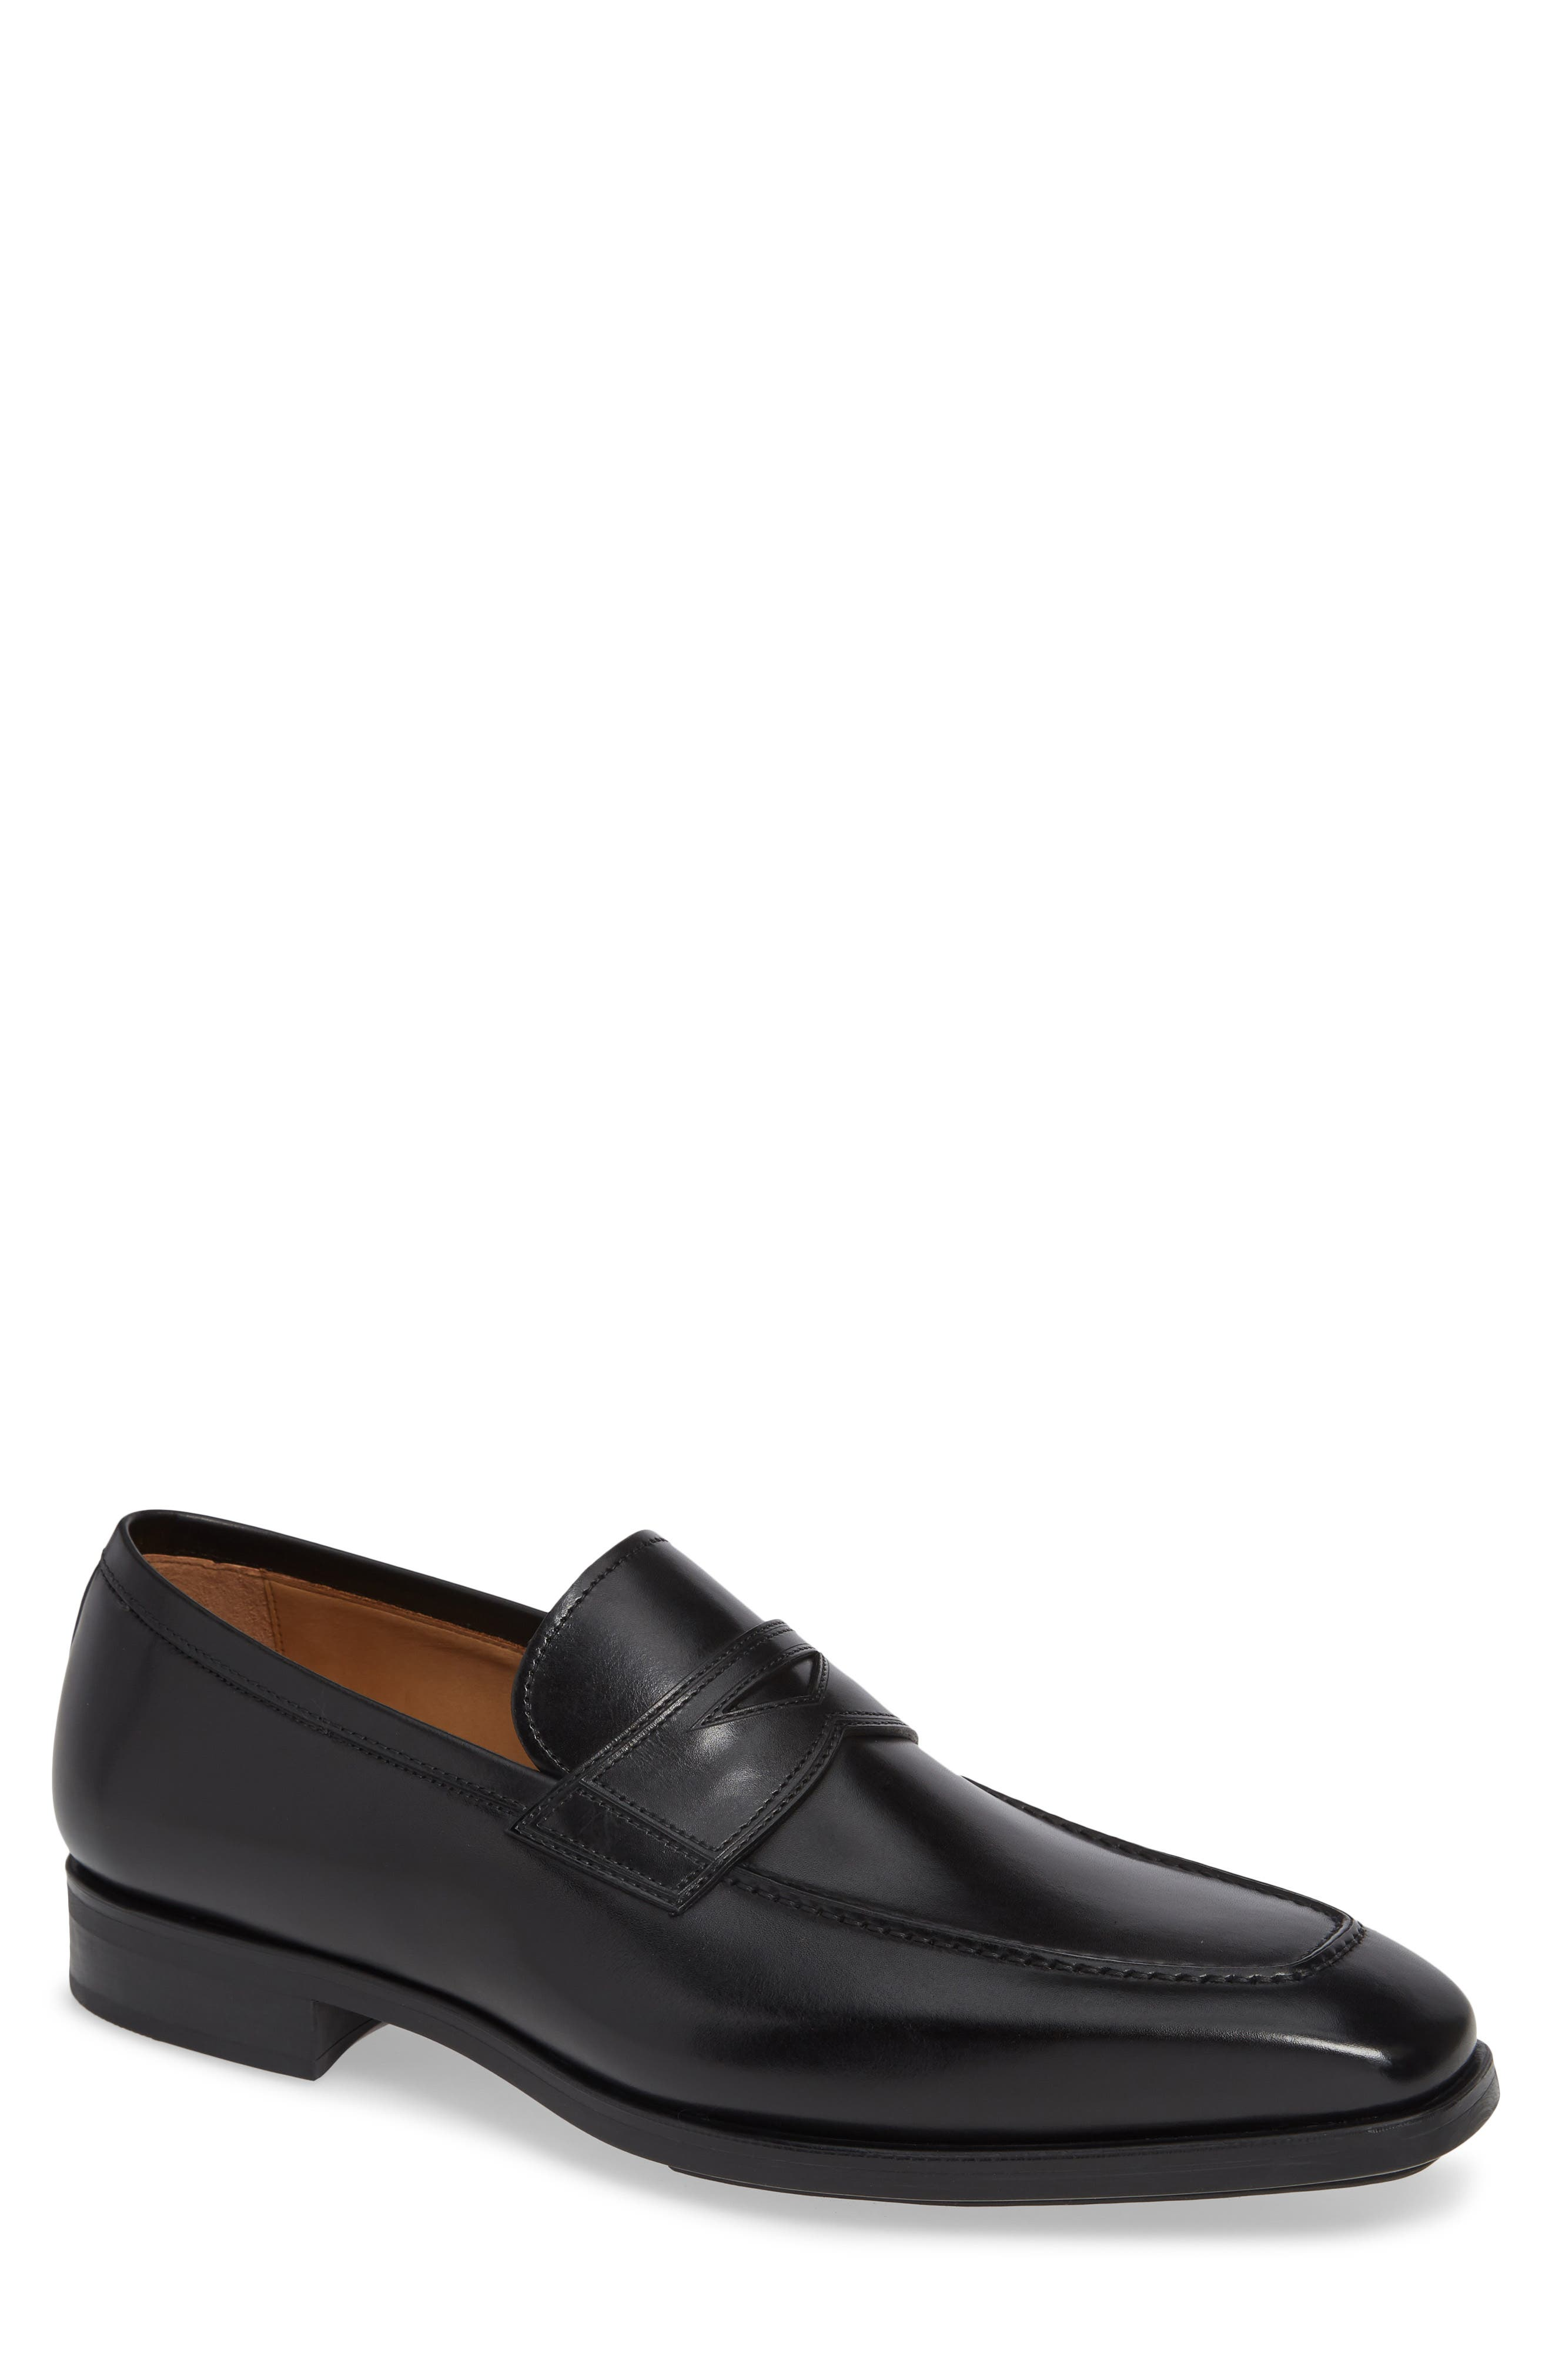 Ramon Penny Loafer,                         Main,                         color, 001